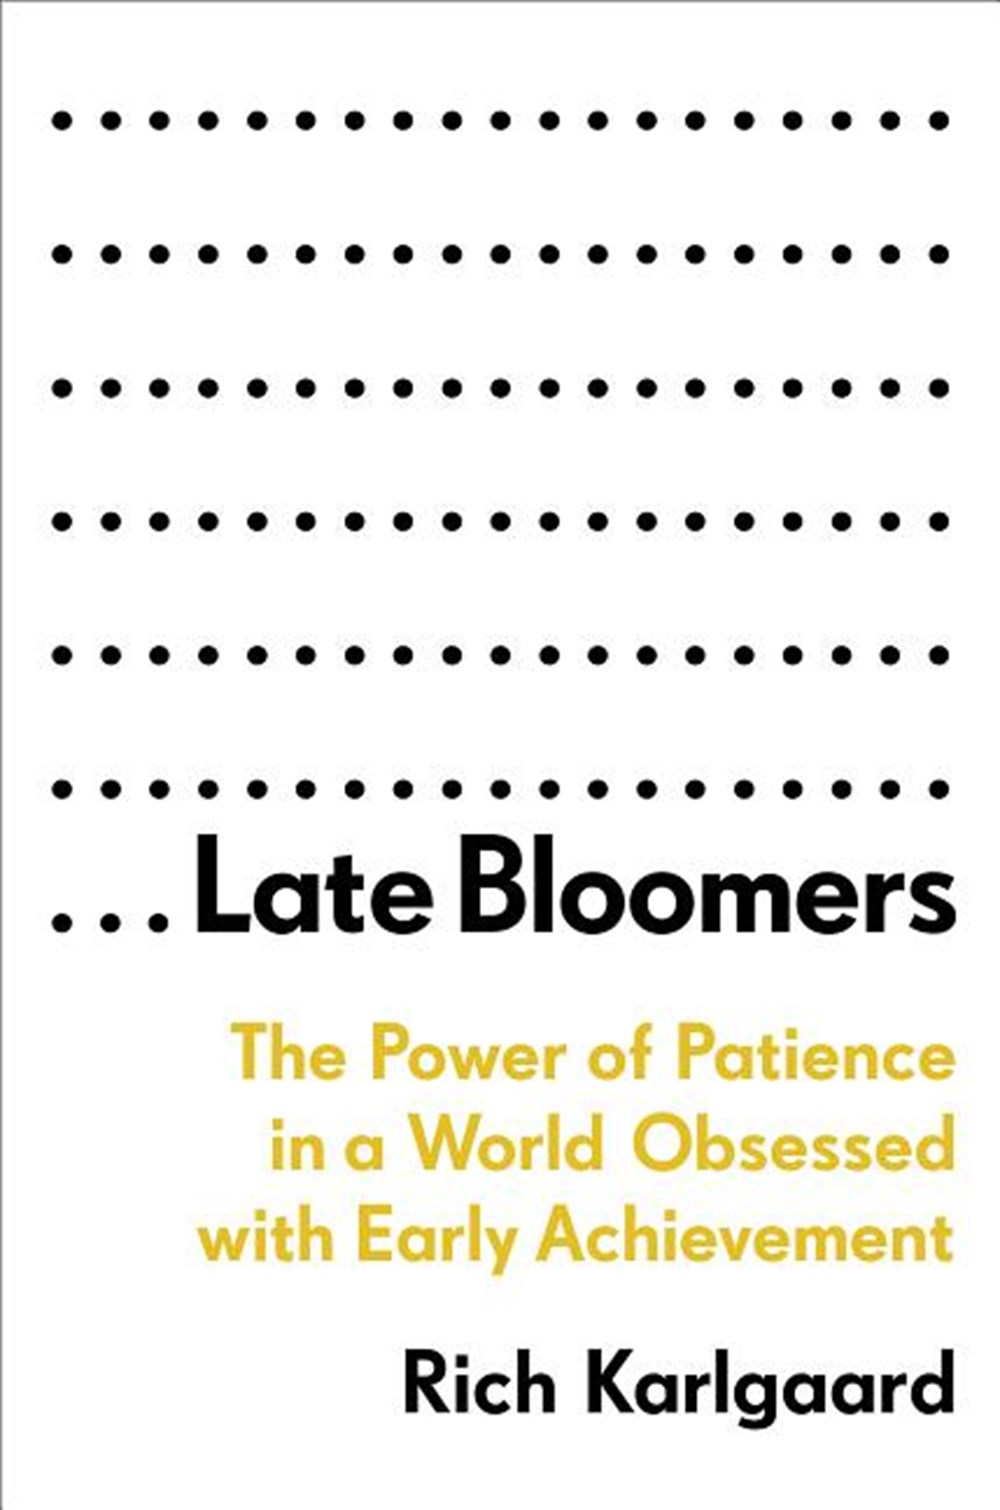 Late Bloomers: The Power of Patience in a World Obsessed with Early  Achievement by Rich Karlgaard